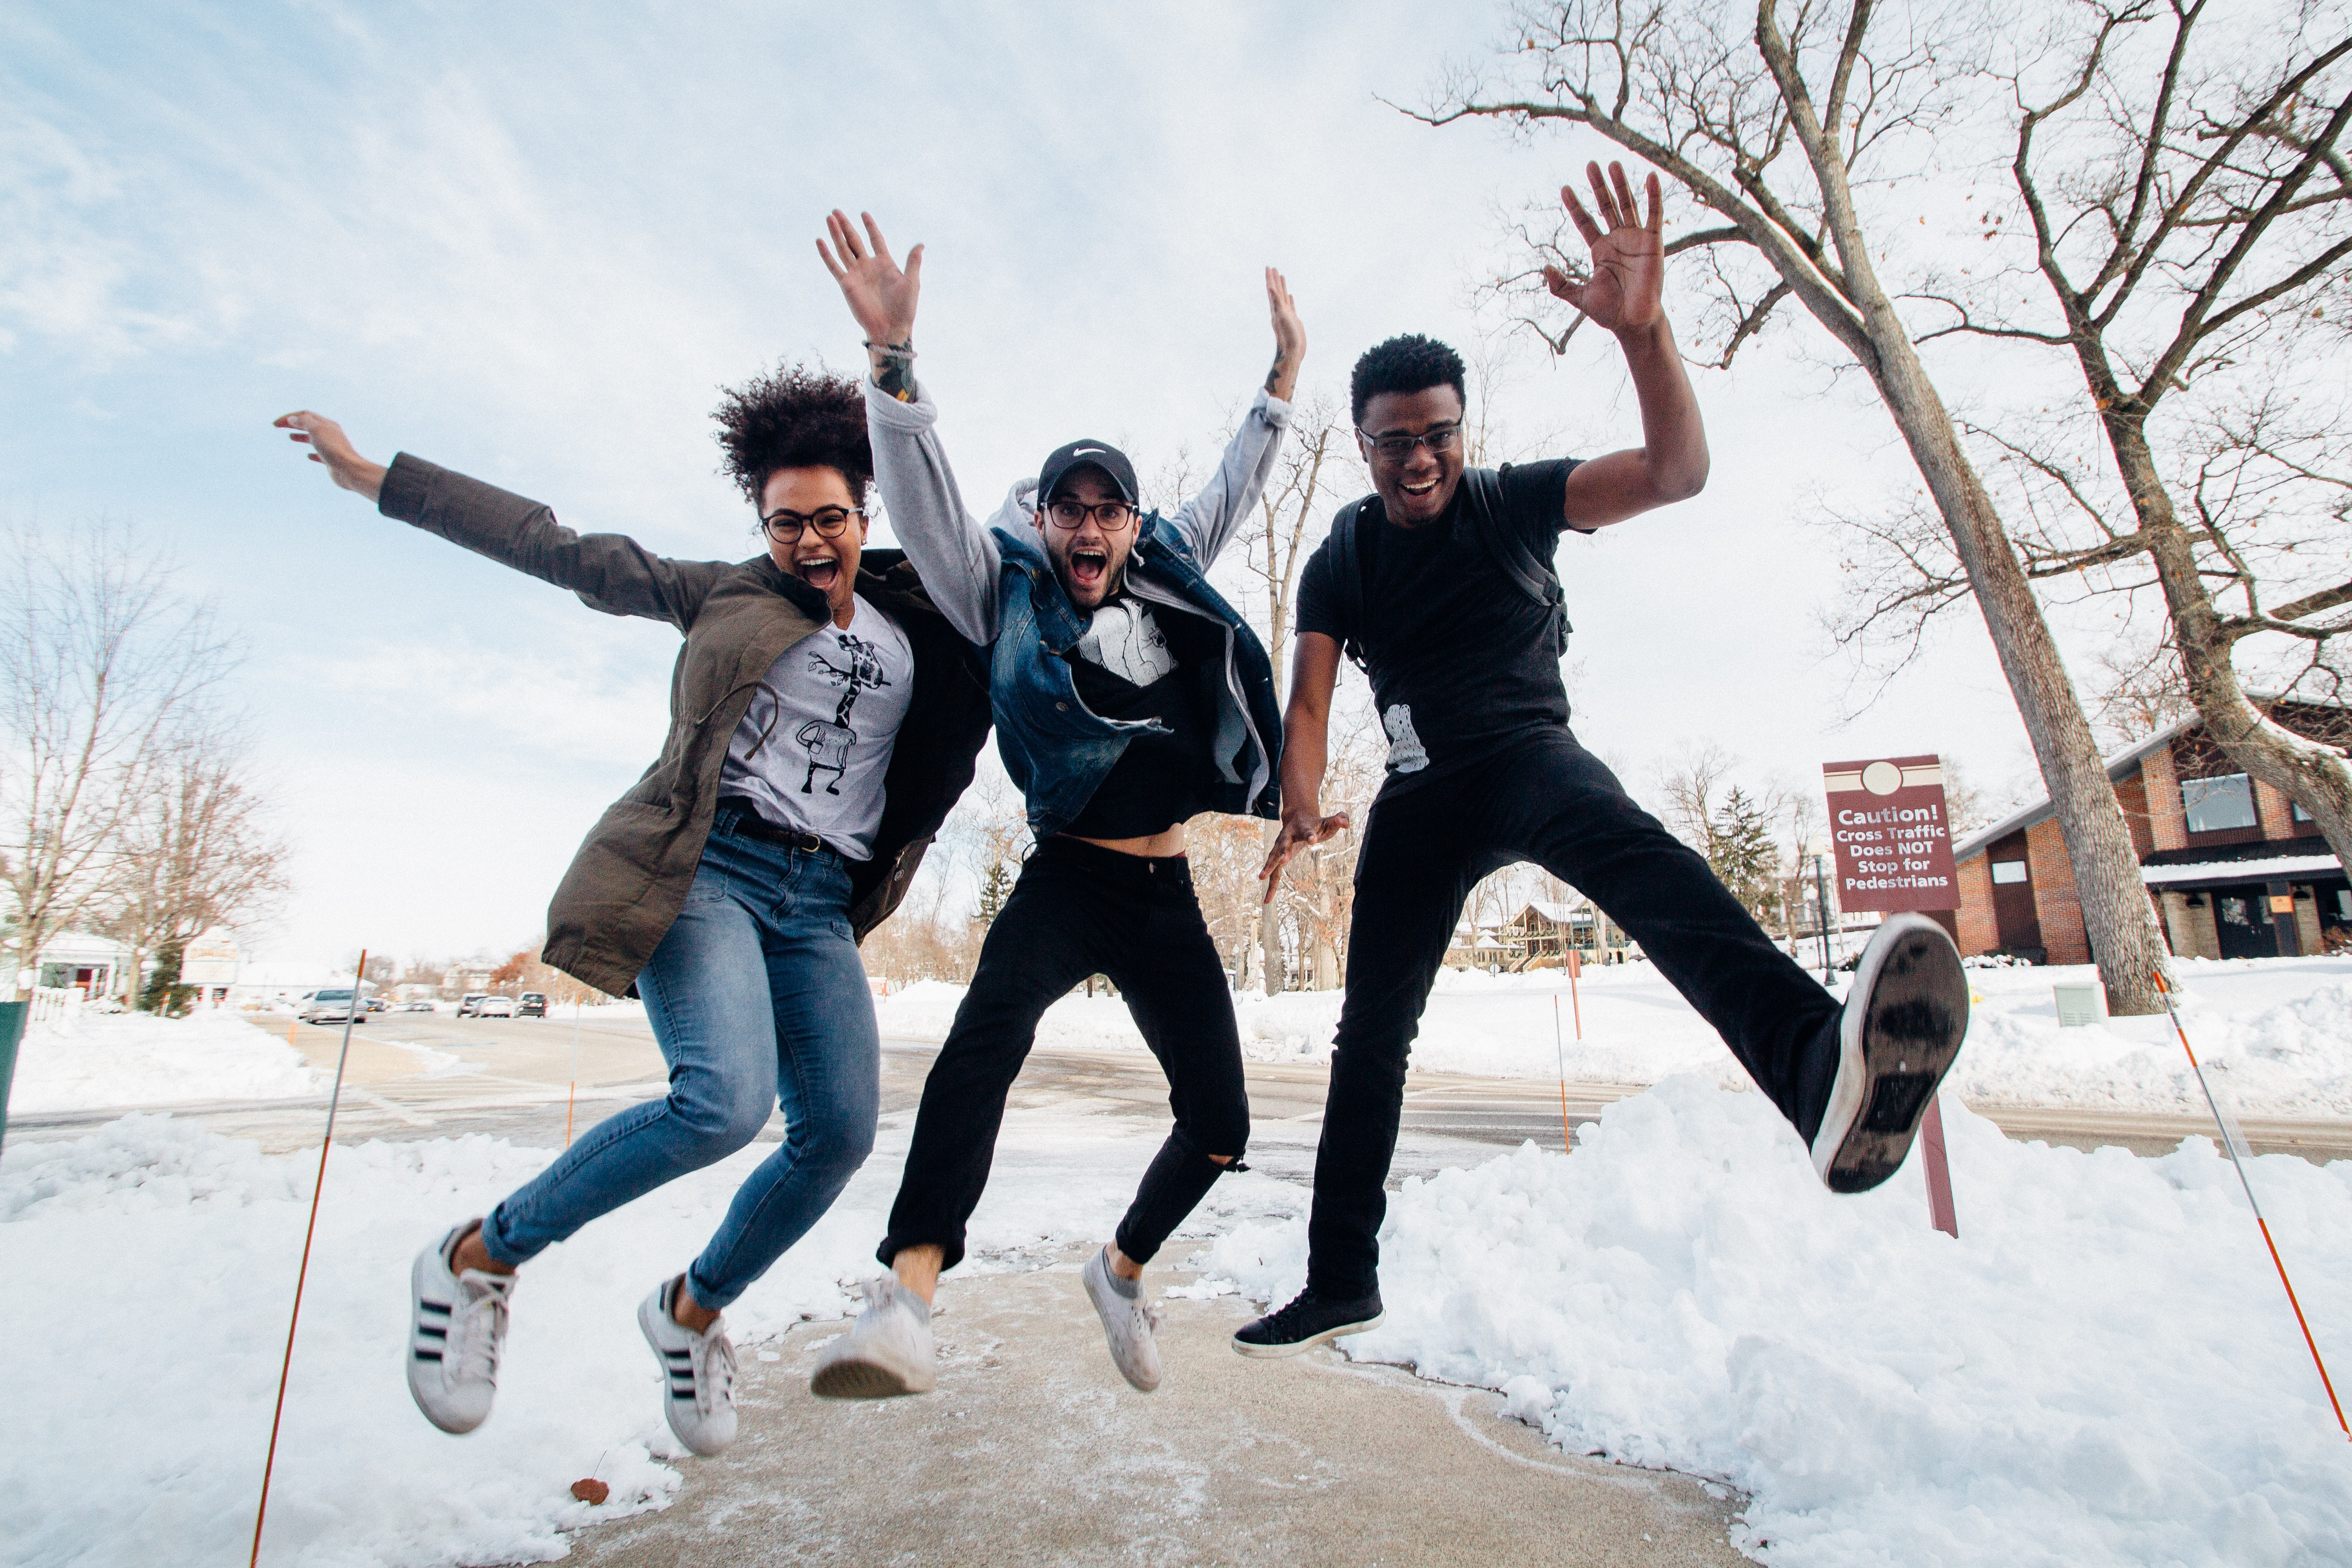 three people jumping in the air, they're on a sidewalk and there is snow on the ground